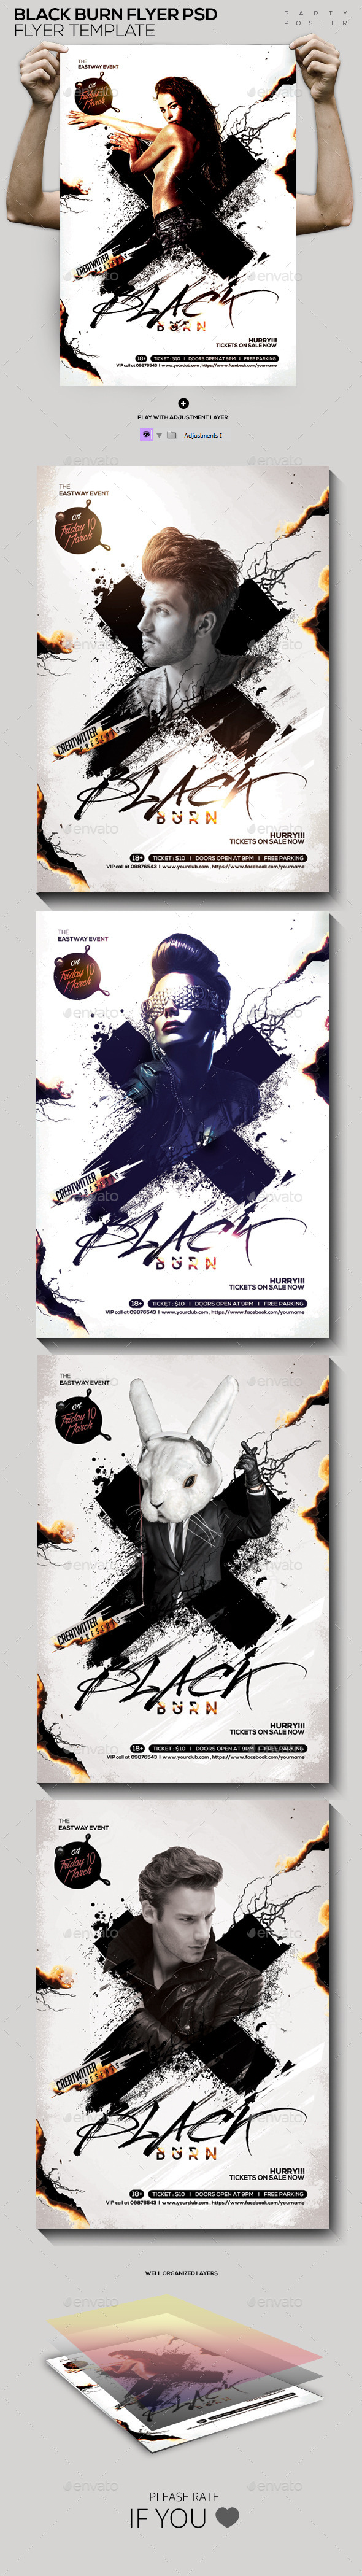 GraphicRiver Black Burn Flyer Poster Template PSD 11925418